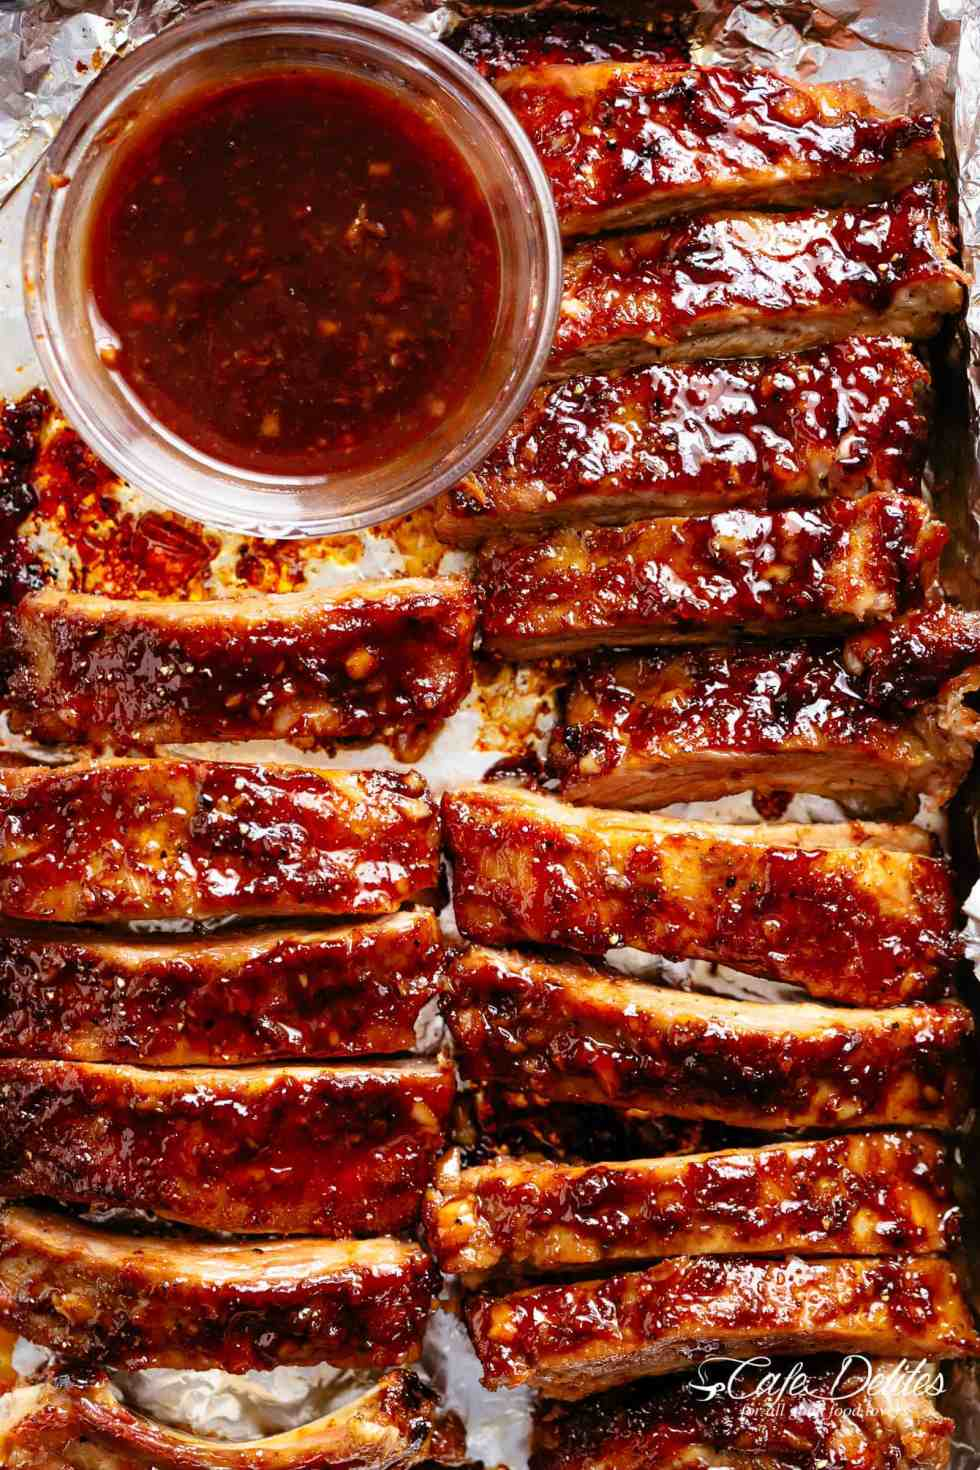 Oven Barbecue Ribsslathered in the most delicious sticky barbecue sauce with a kick of garlic and optional heat! Juicy melt-in-your-mouth oven baked Barbecue Pork Ribs are fall-off-the-bone delicious! Double up on incredible flavour with an easy to make dry rub first, then coat them in a seasoned barbecue sauce mixture so addictive you won't stop at one! Finger licking good ribs right here! | cafedelites.com